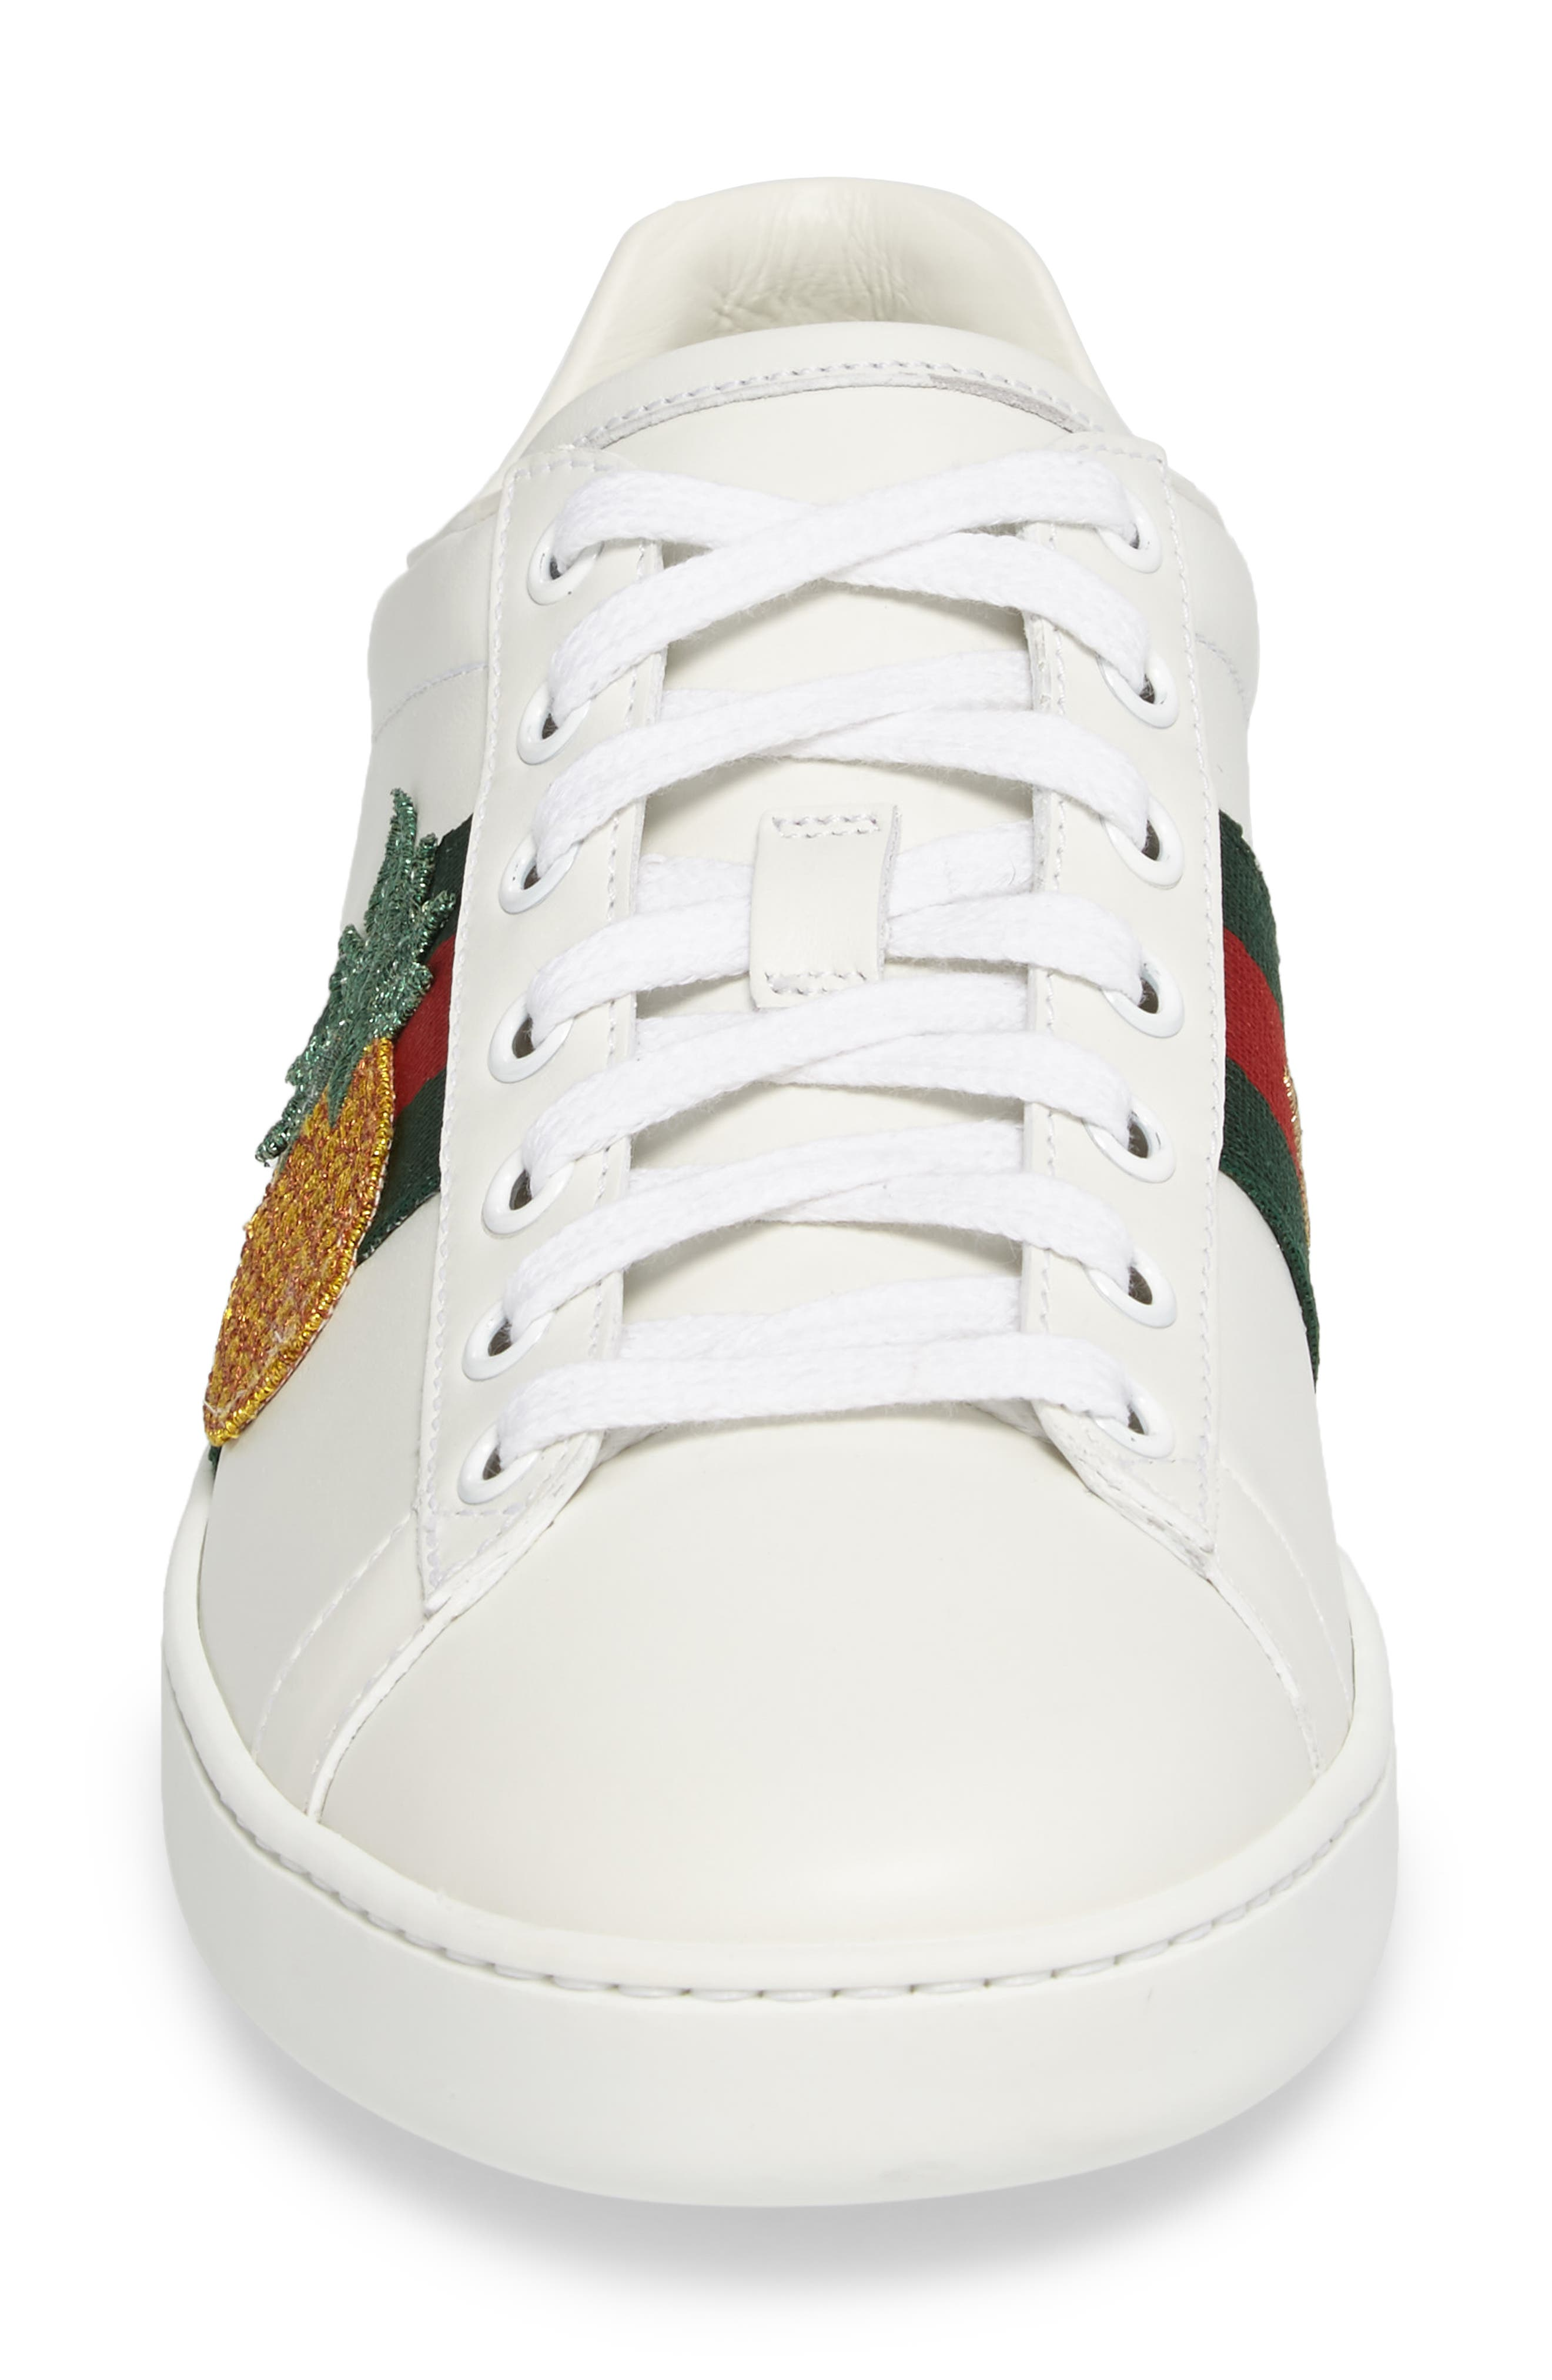 Alternate Image 4  - Gucci New Ace Pineapple Sneaker (Women)